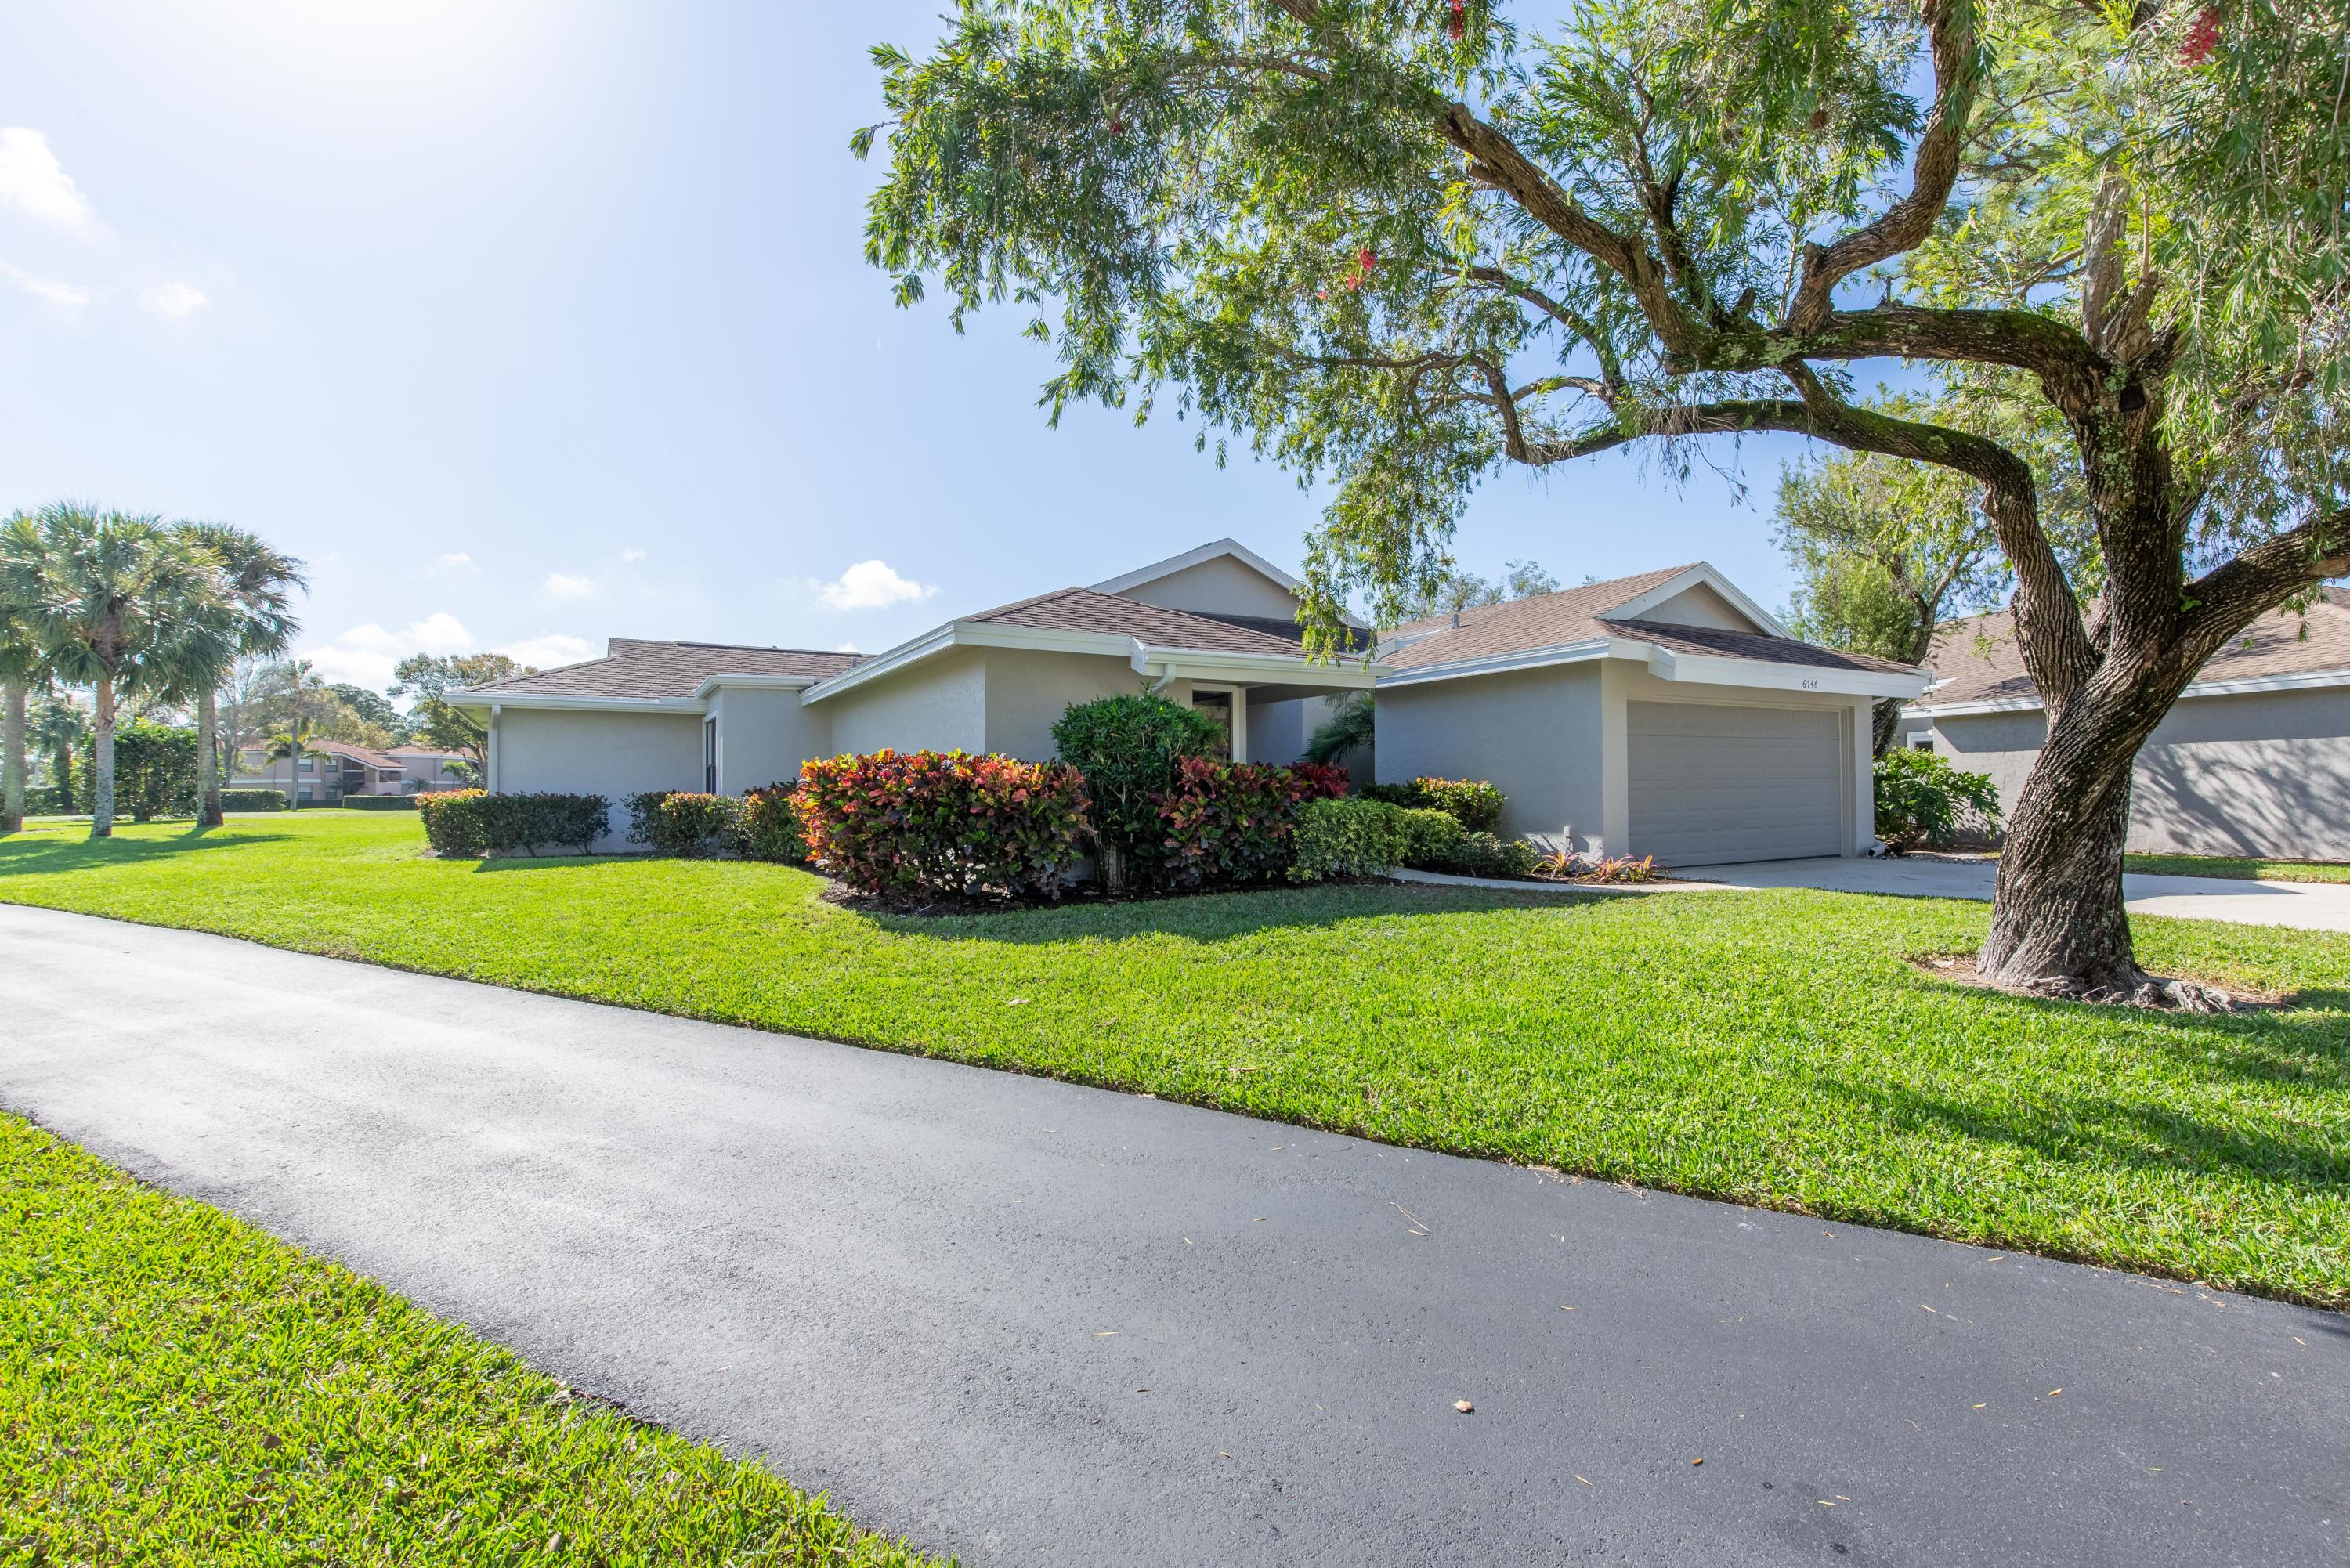 6746 Touchstone Circle, West Palm Beach, Florida 33418, 3 Bedrooms Bedrooms, ,2 BathroomsBathrooms,Single Family,For Sale,Touchstone,RX-10503265